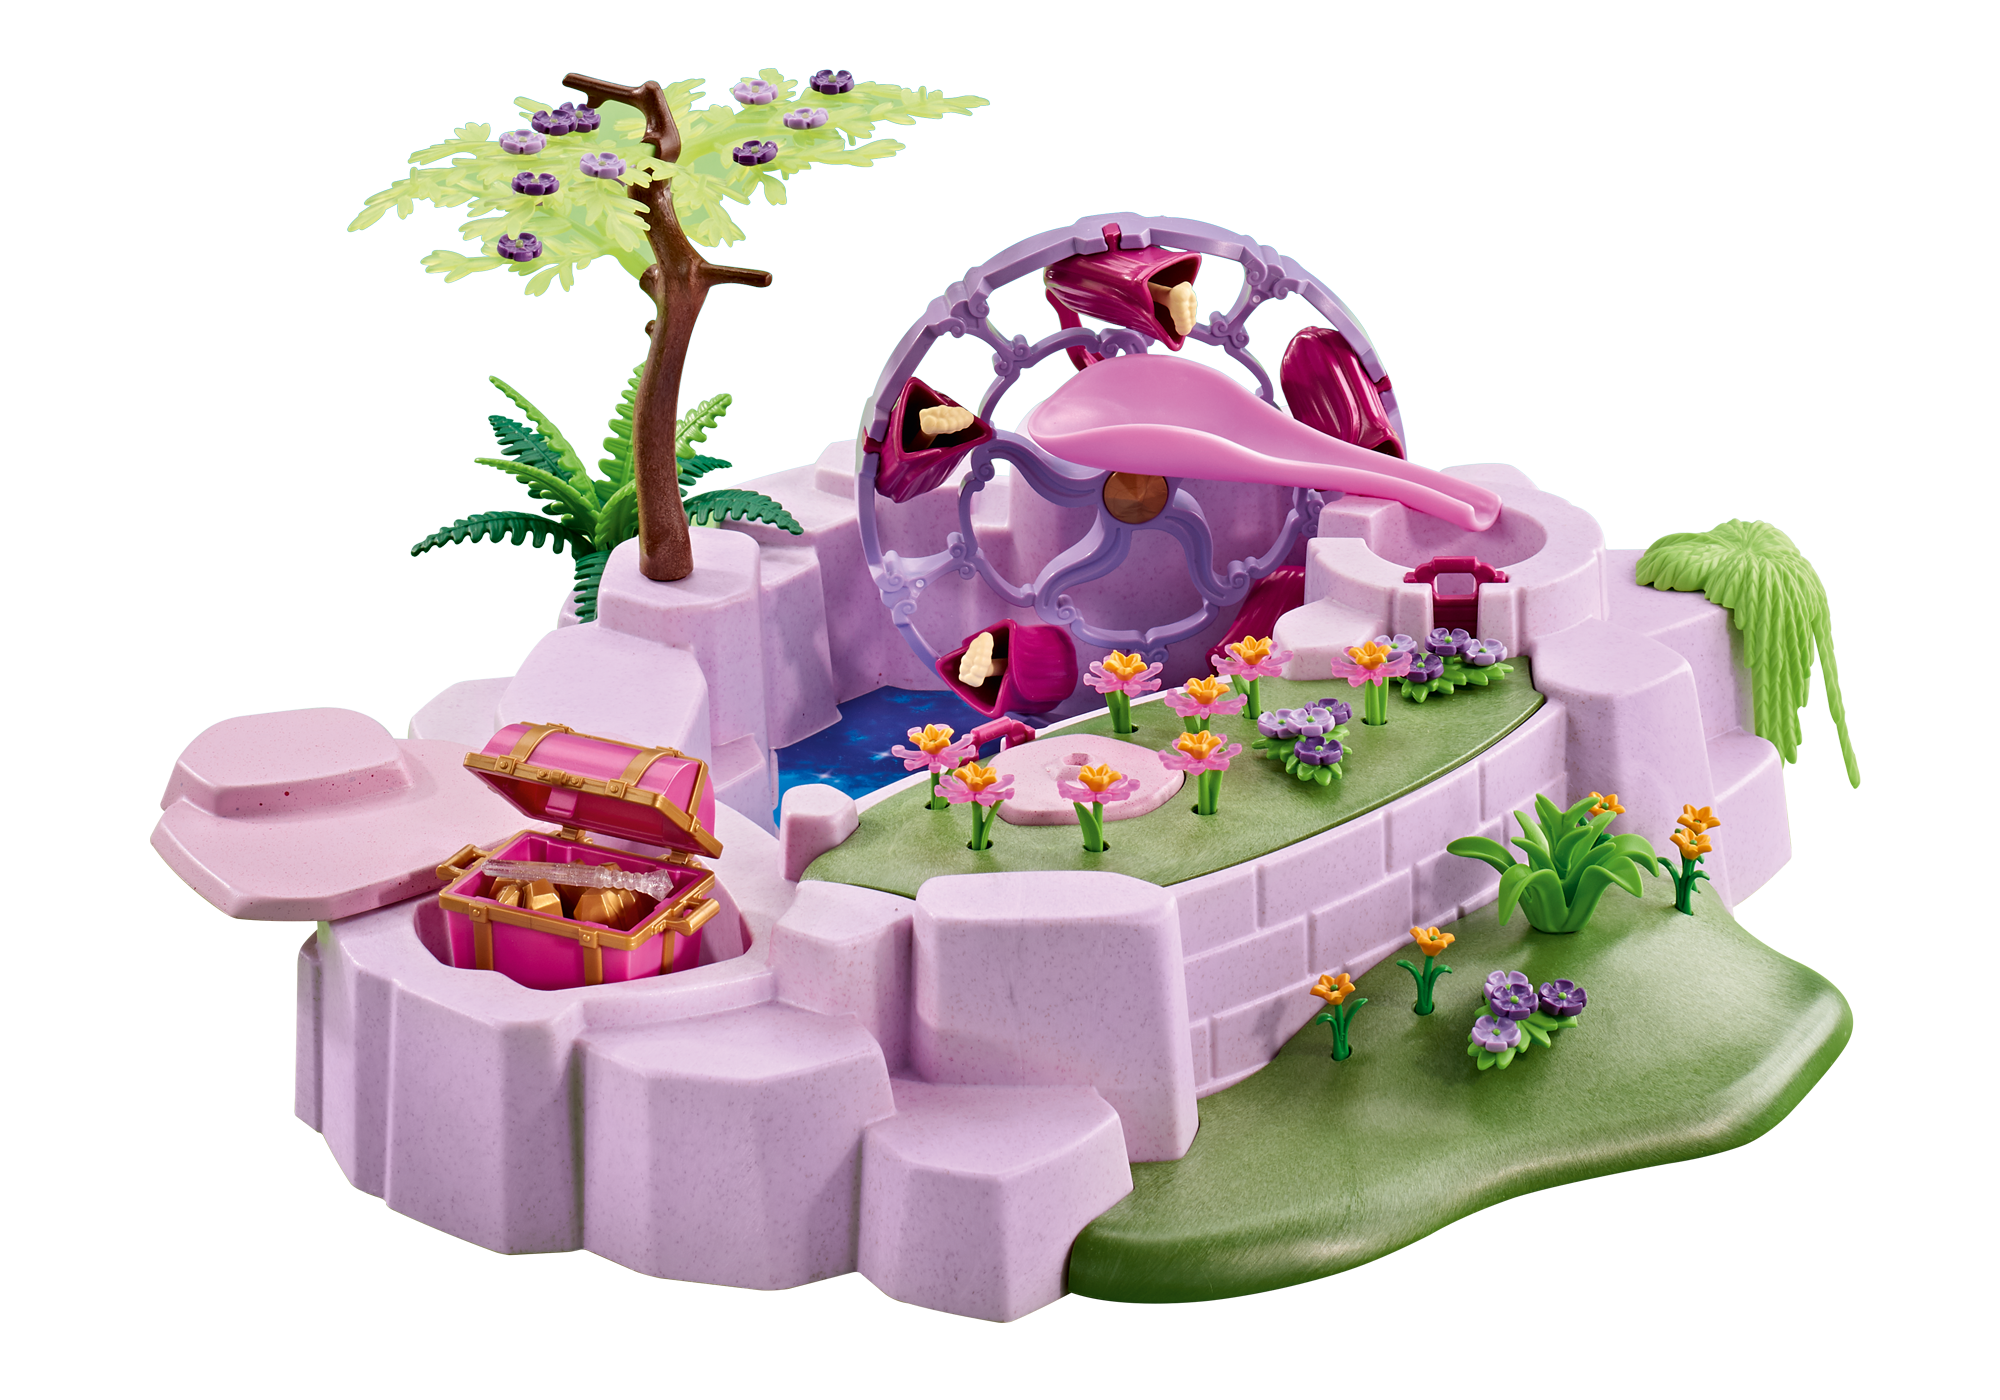 http://media.playmobil.com/i/playmobil/6563_product_detail/Betoverende vijver